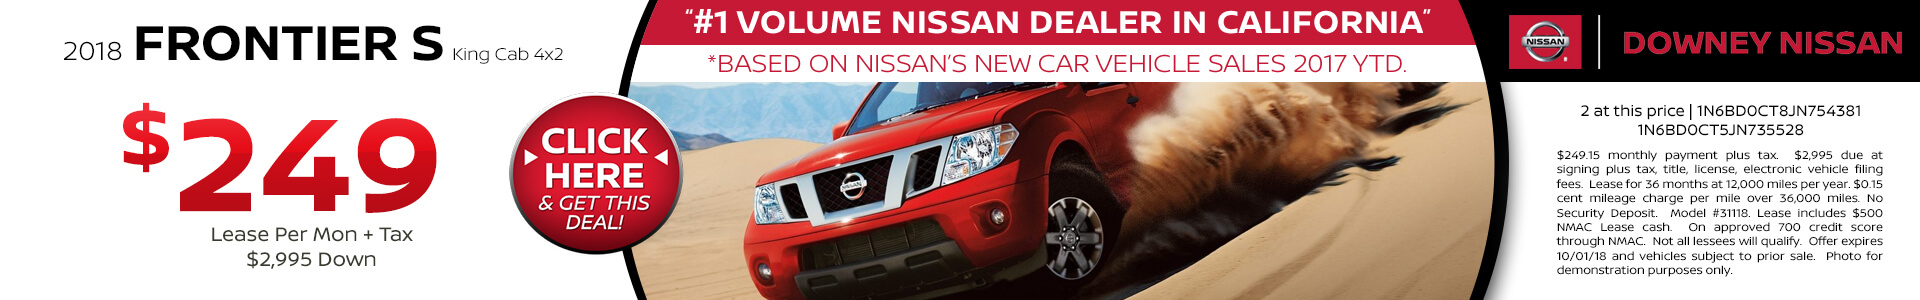 2018 Frontier - Lease for $249